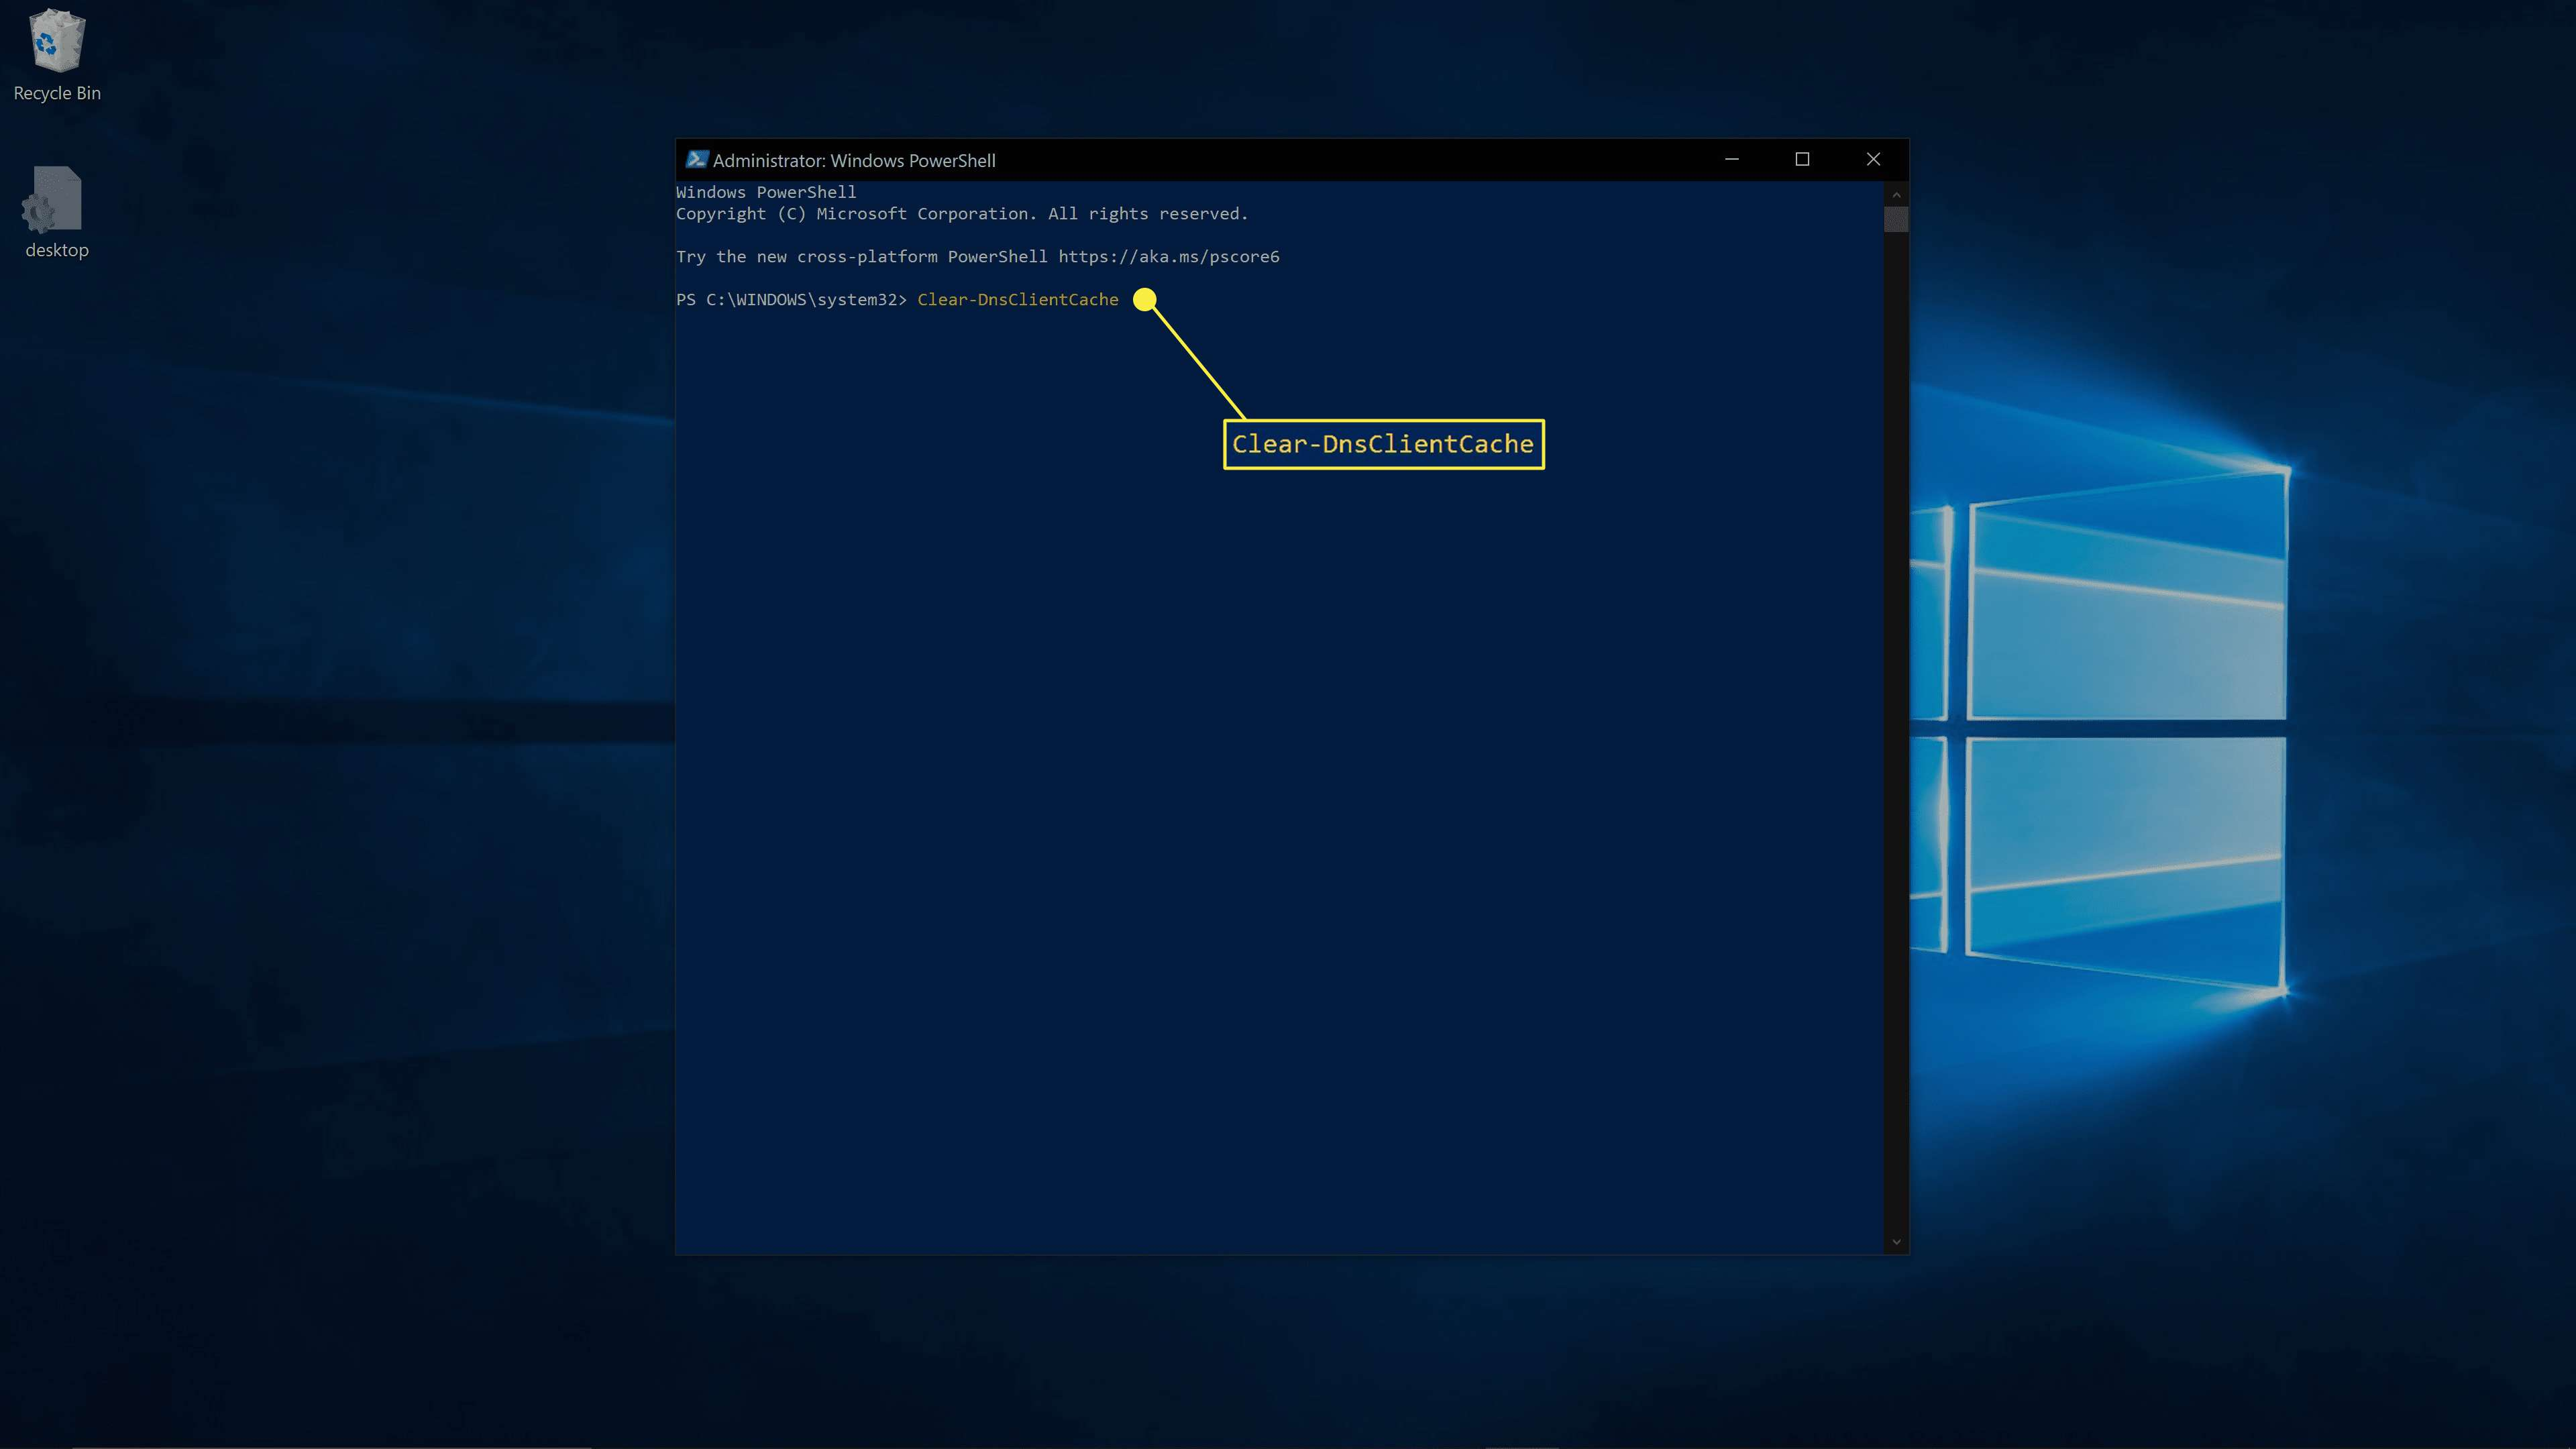 Clearing DNS using the Windows PowerShell.